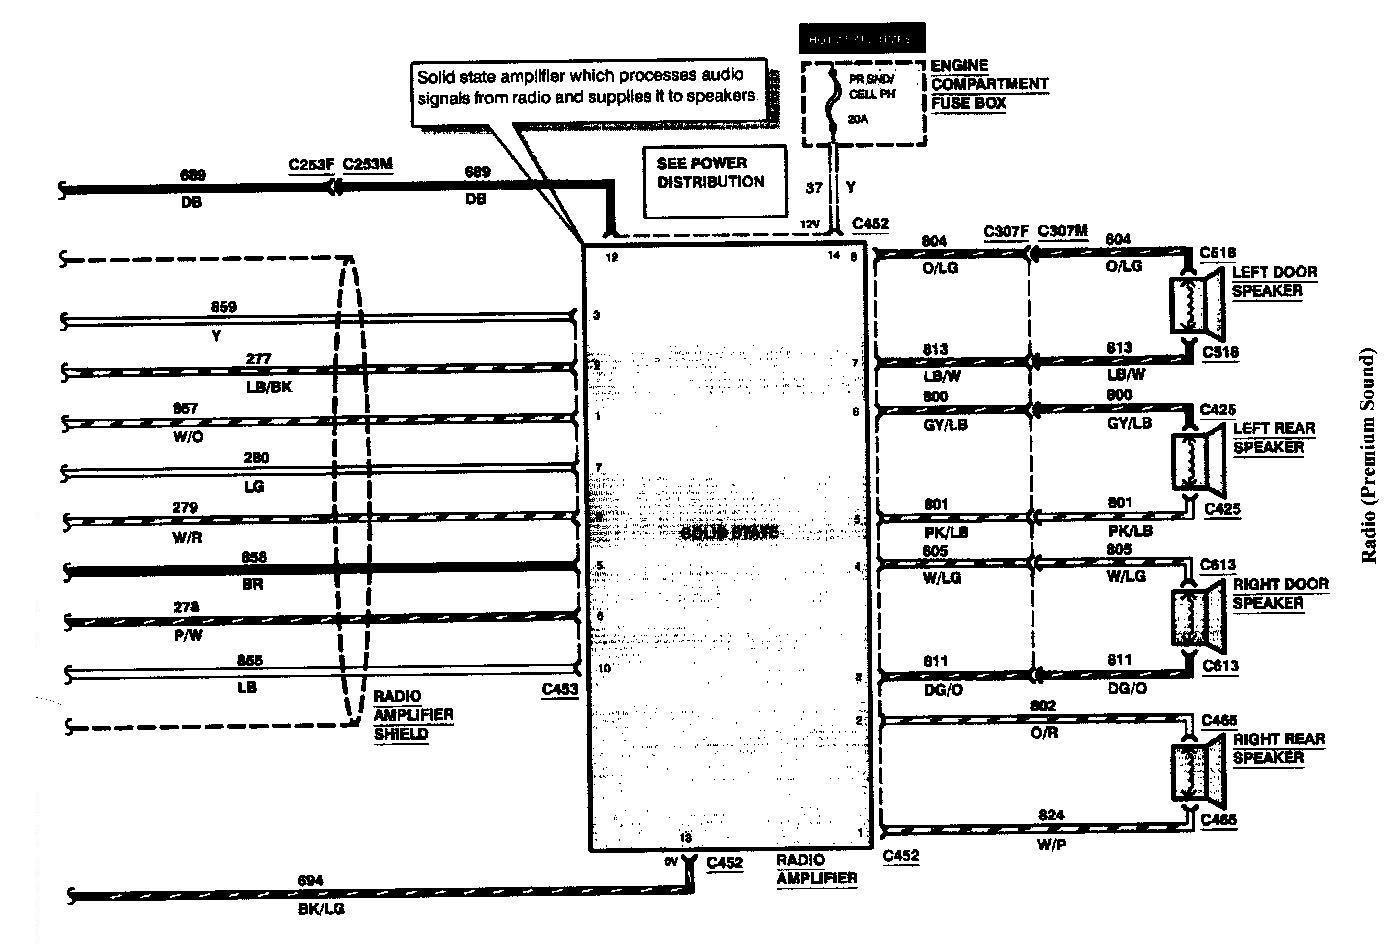 hight resolution of 1994 lincoln town car radio wiring diagram wiring diagram detailed 1994 jeep grand cherokee radio wiring diagram wiring diagram clarion radio made 1998